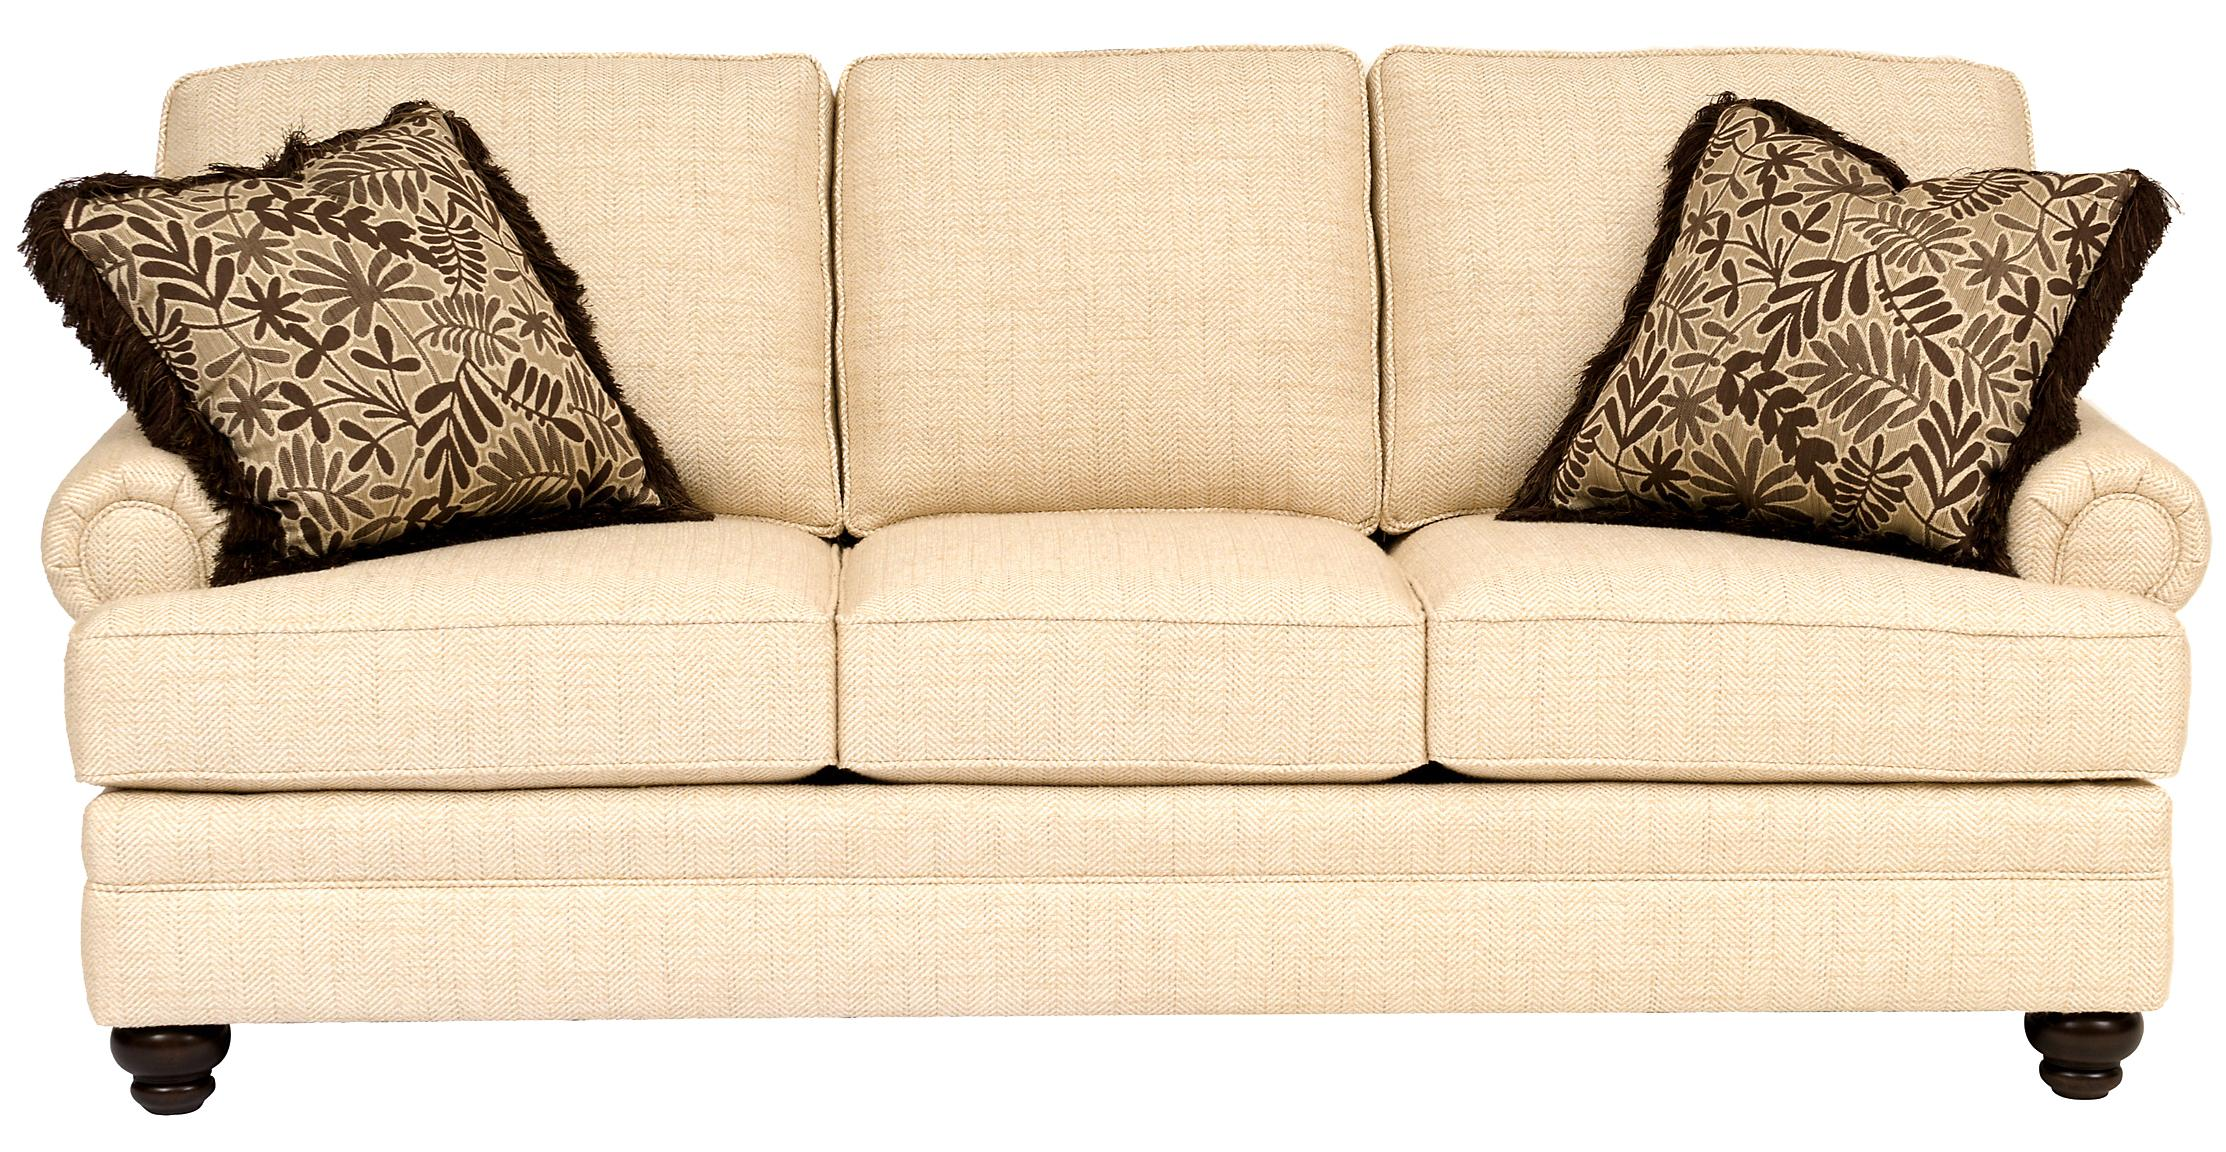 Smith Brothers Build Your Own 5000 Series Sofa With Turned Legs Westrich Furniture Liances Sofas